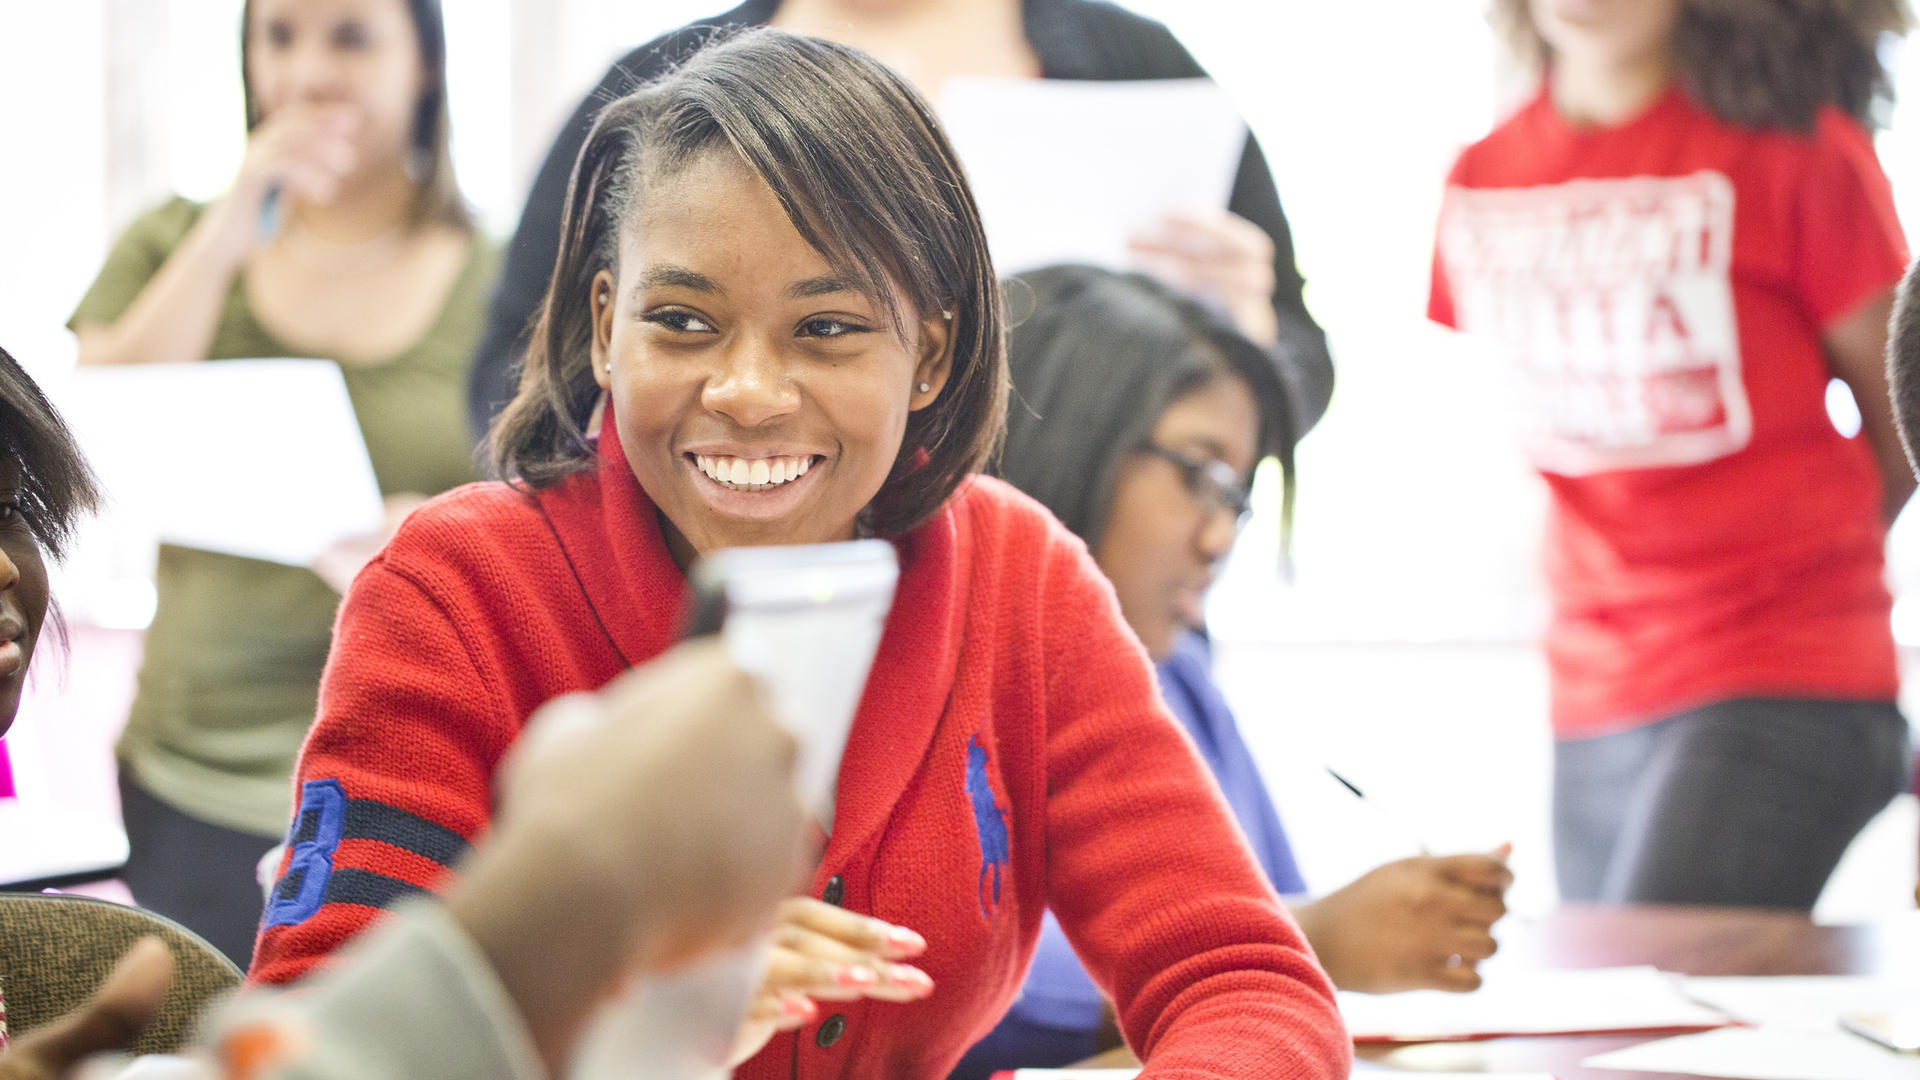 Student in red sweater sitting at a table, smiling